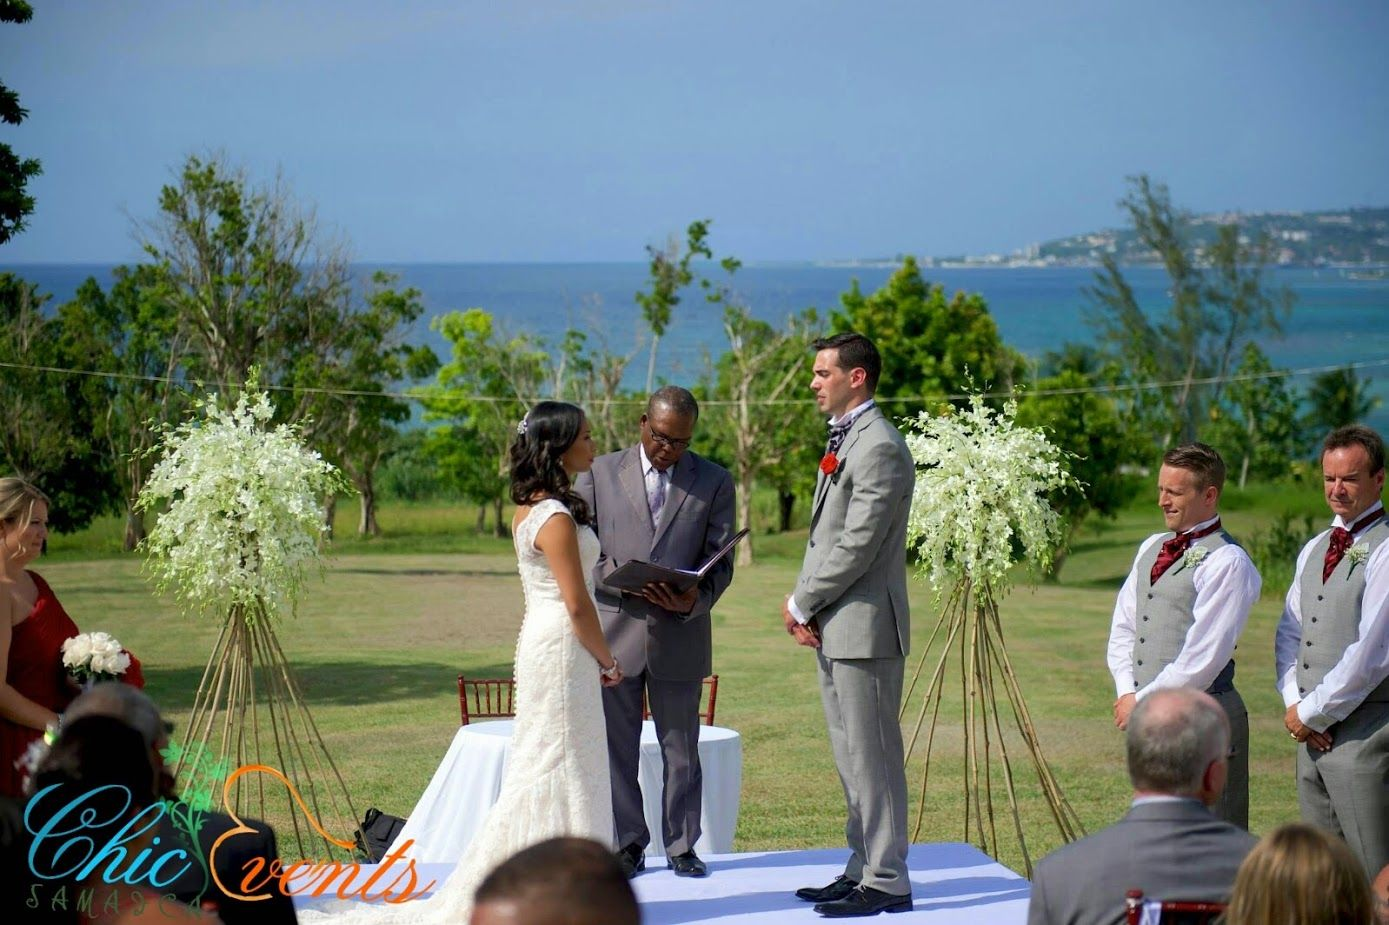 Chic Events Jamaica Provides Wedding Ceremony Reception Venue In